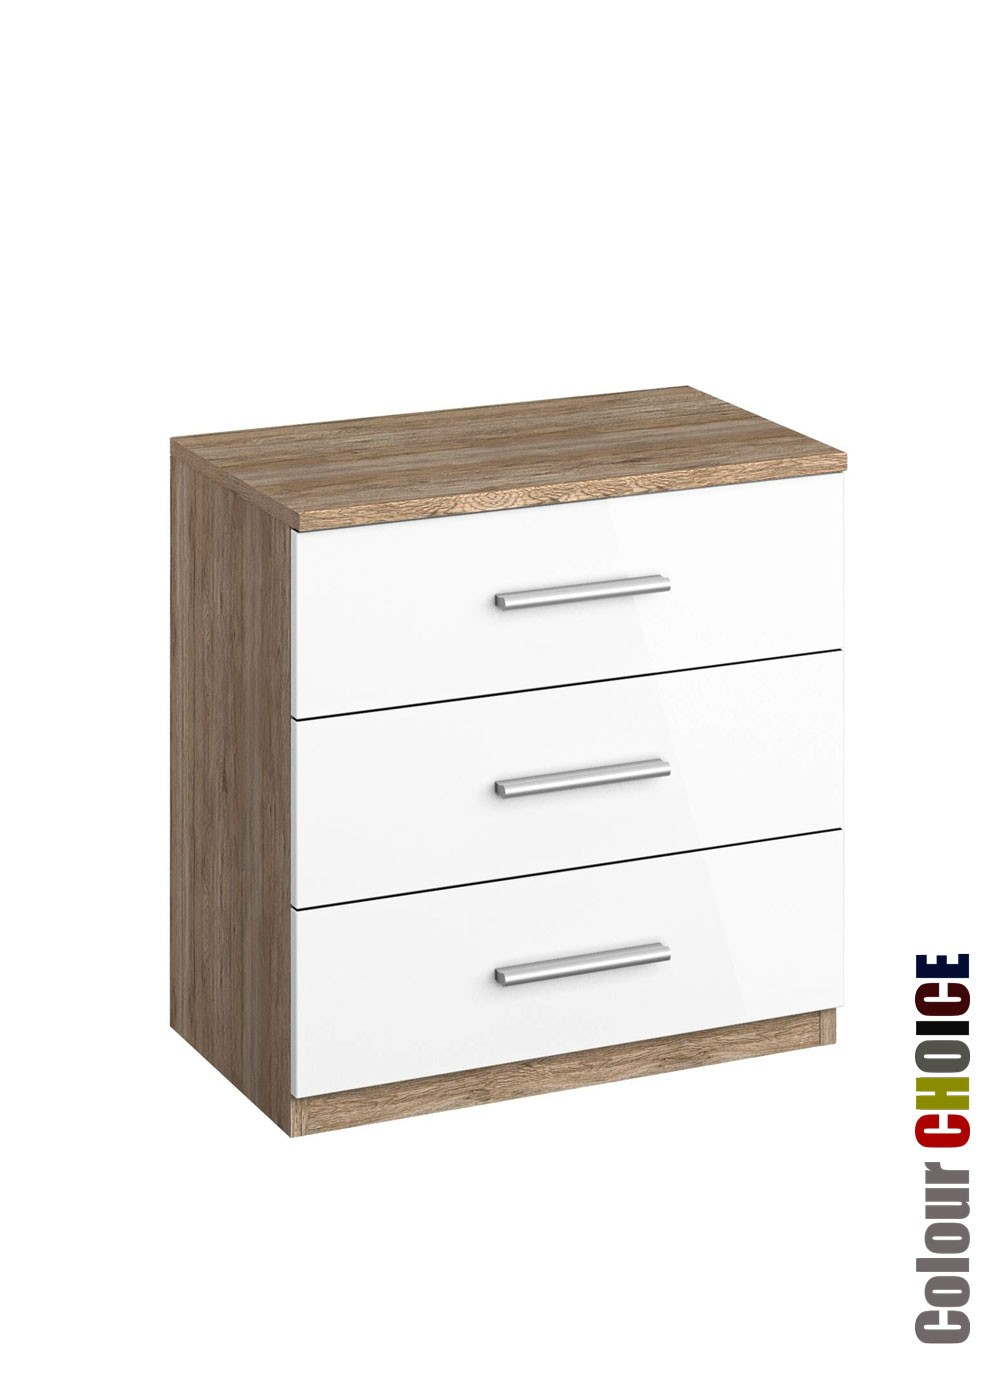 Rauch Cello 3 Drawer Bedside